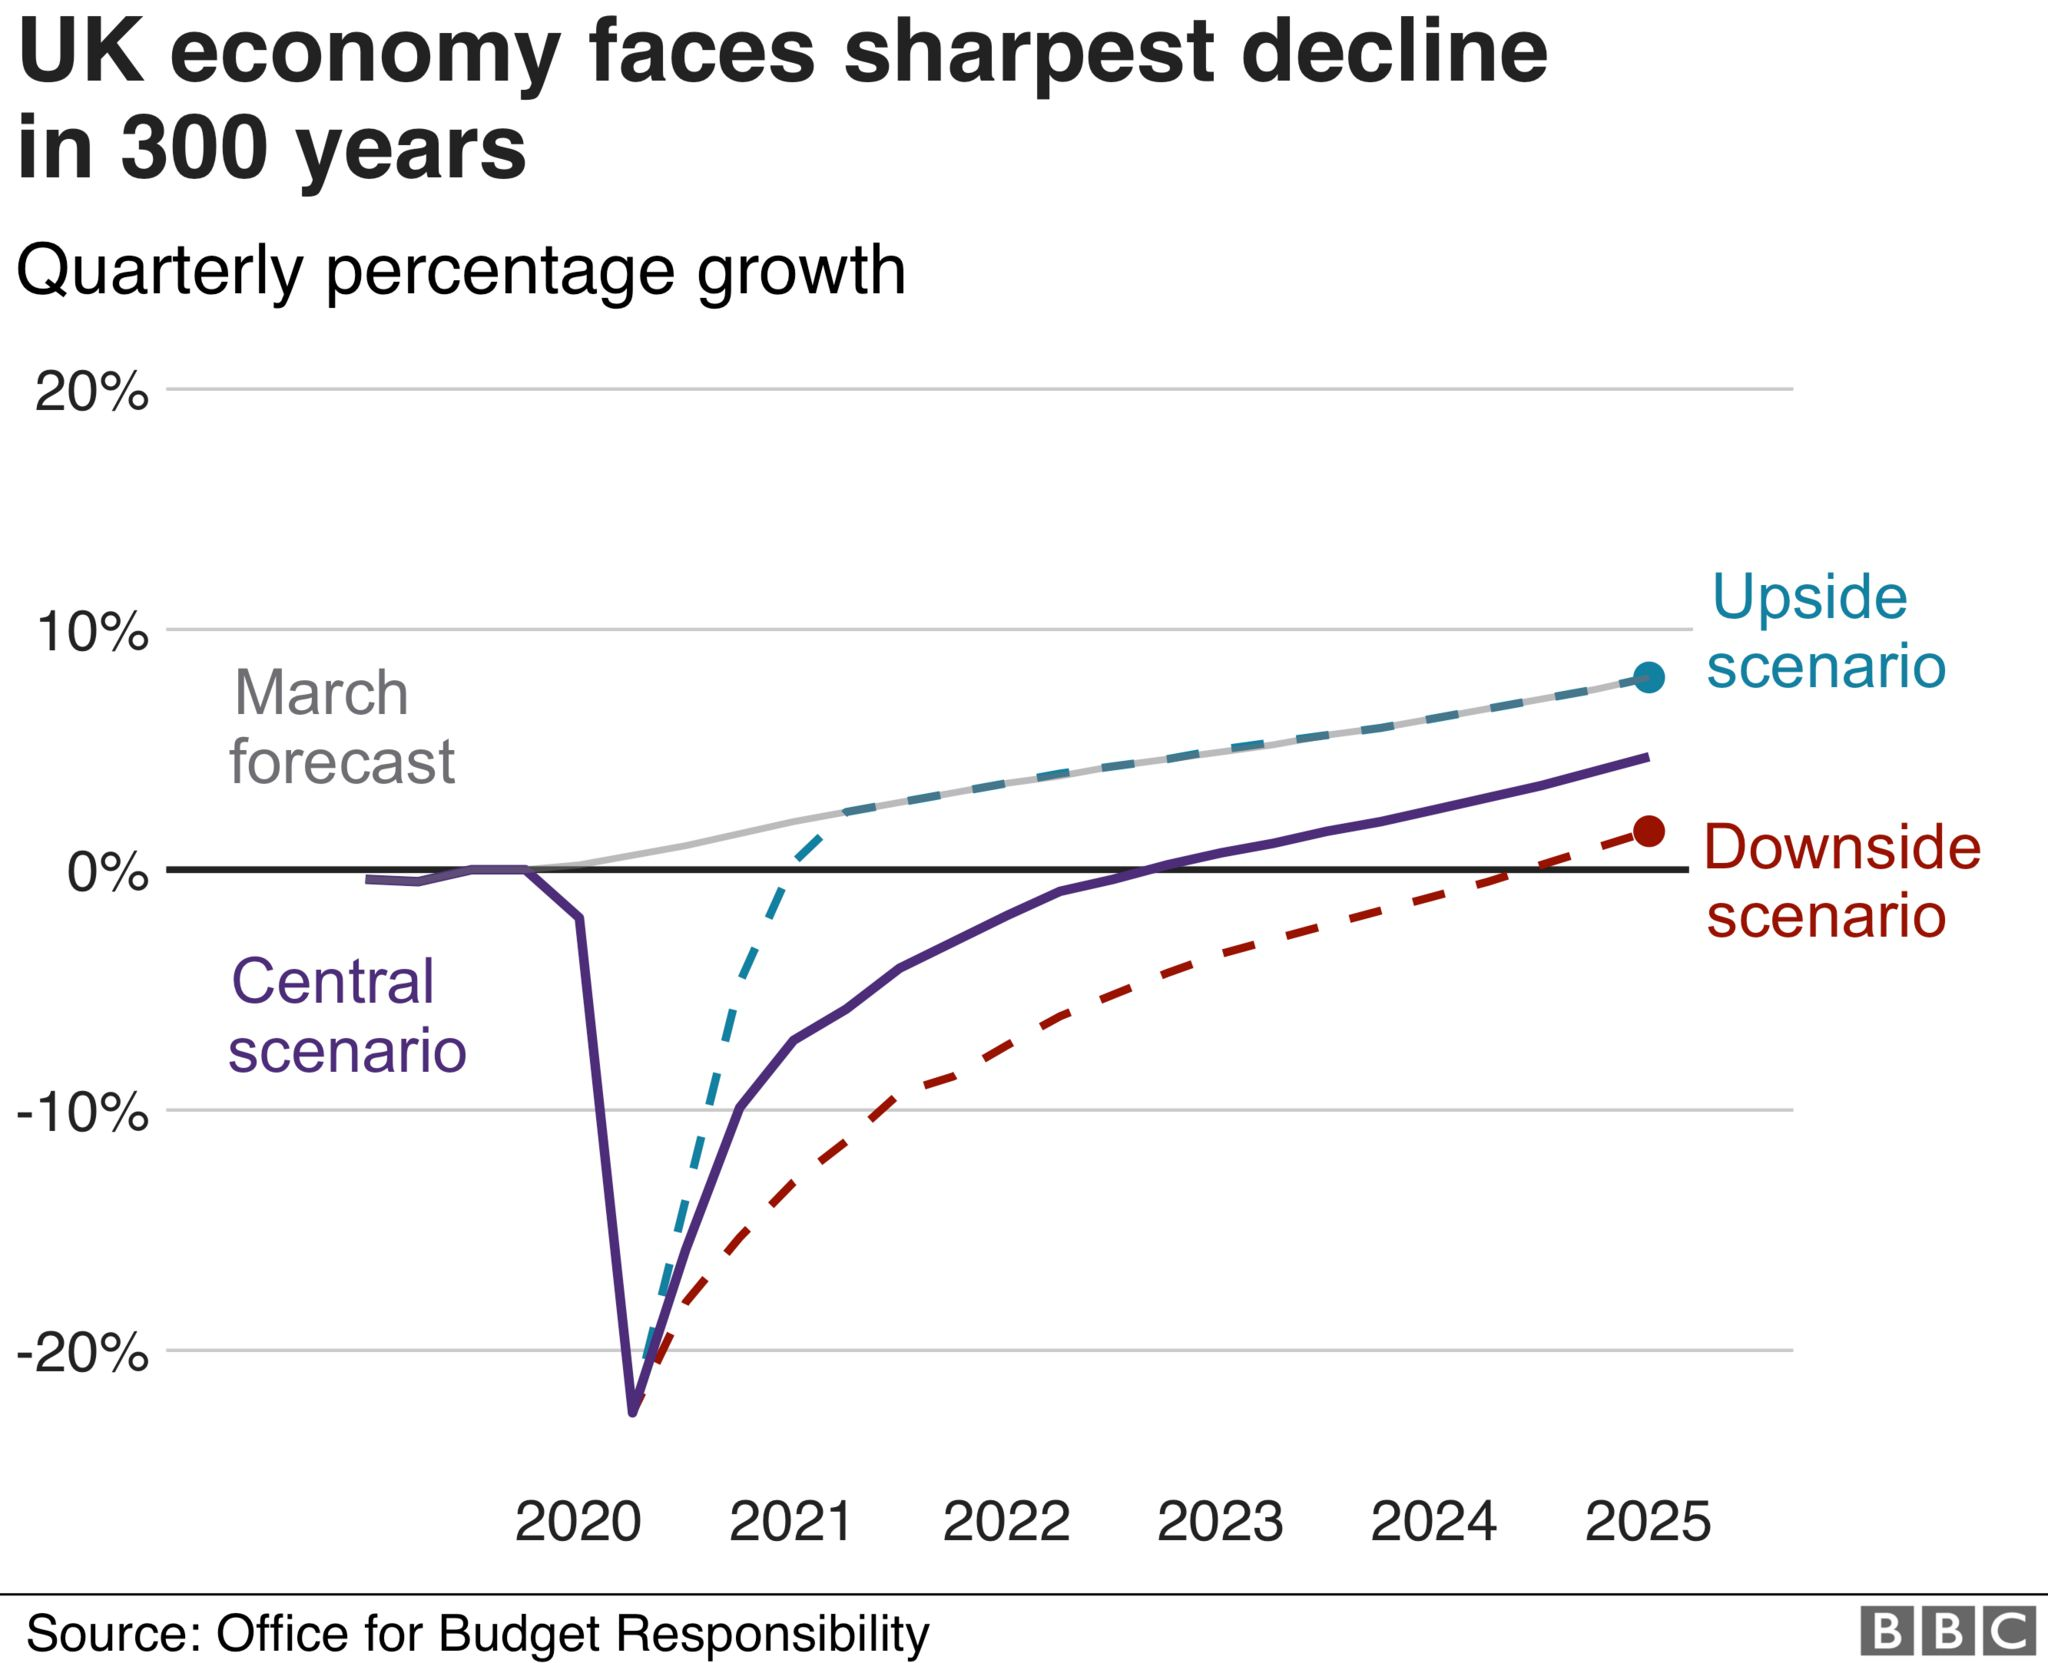 UK economy faces sharpest decline in 300 years